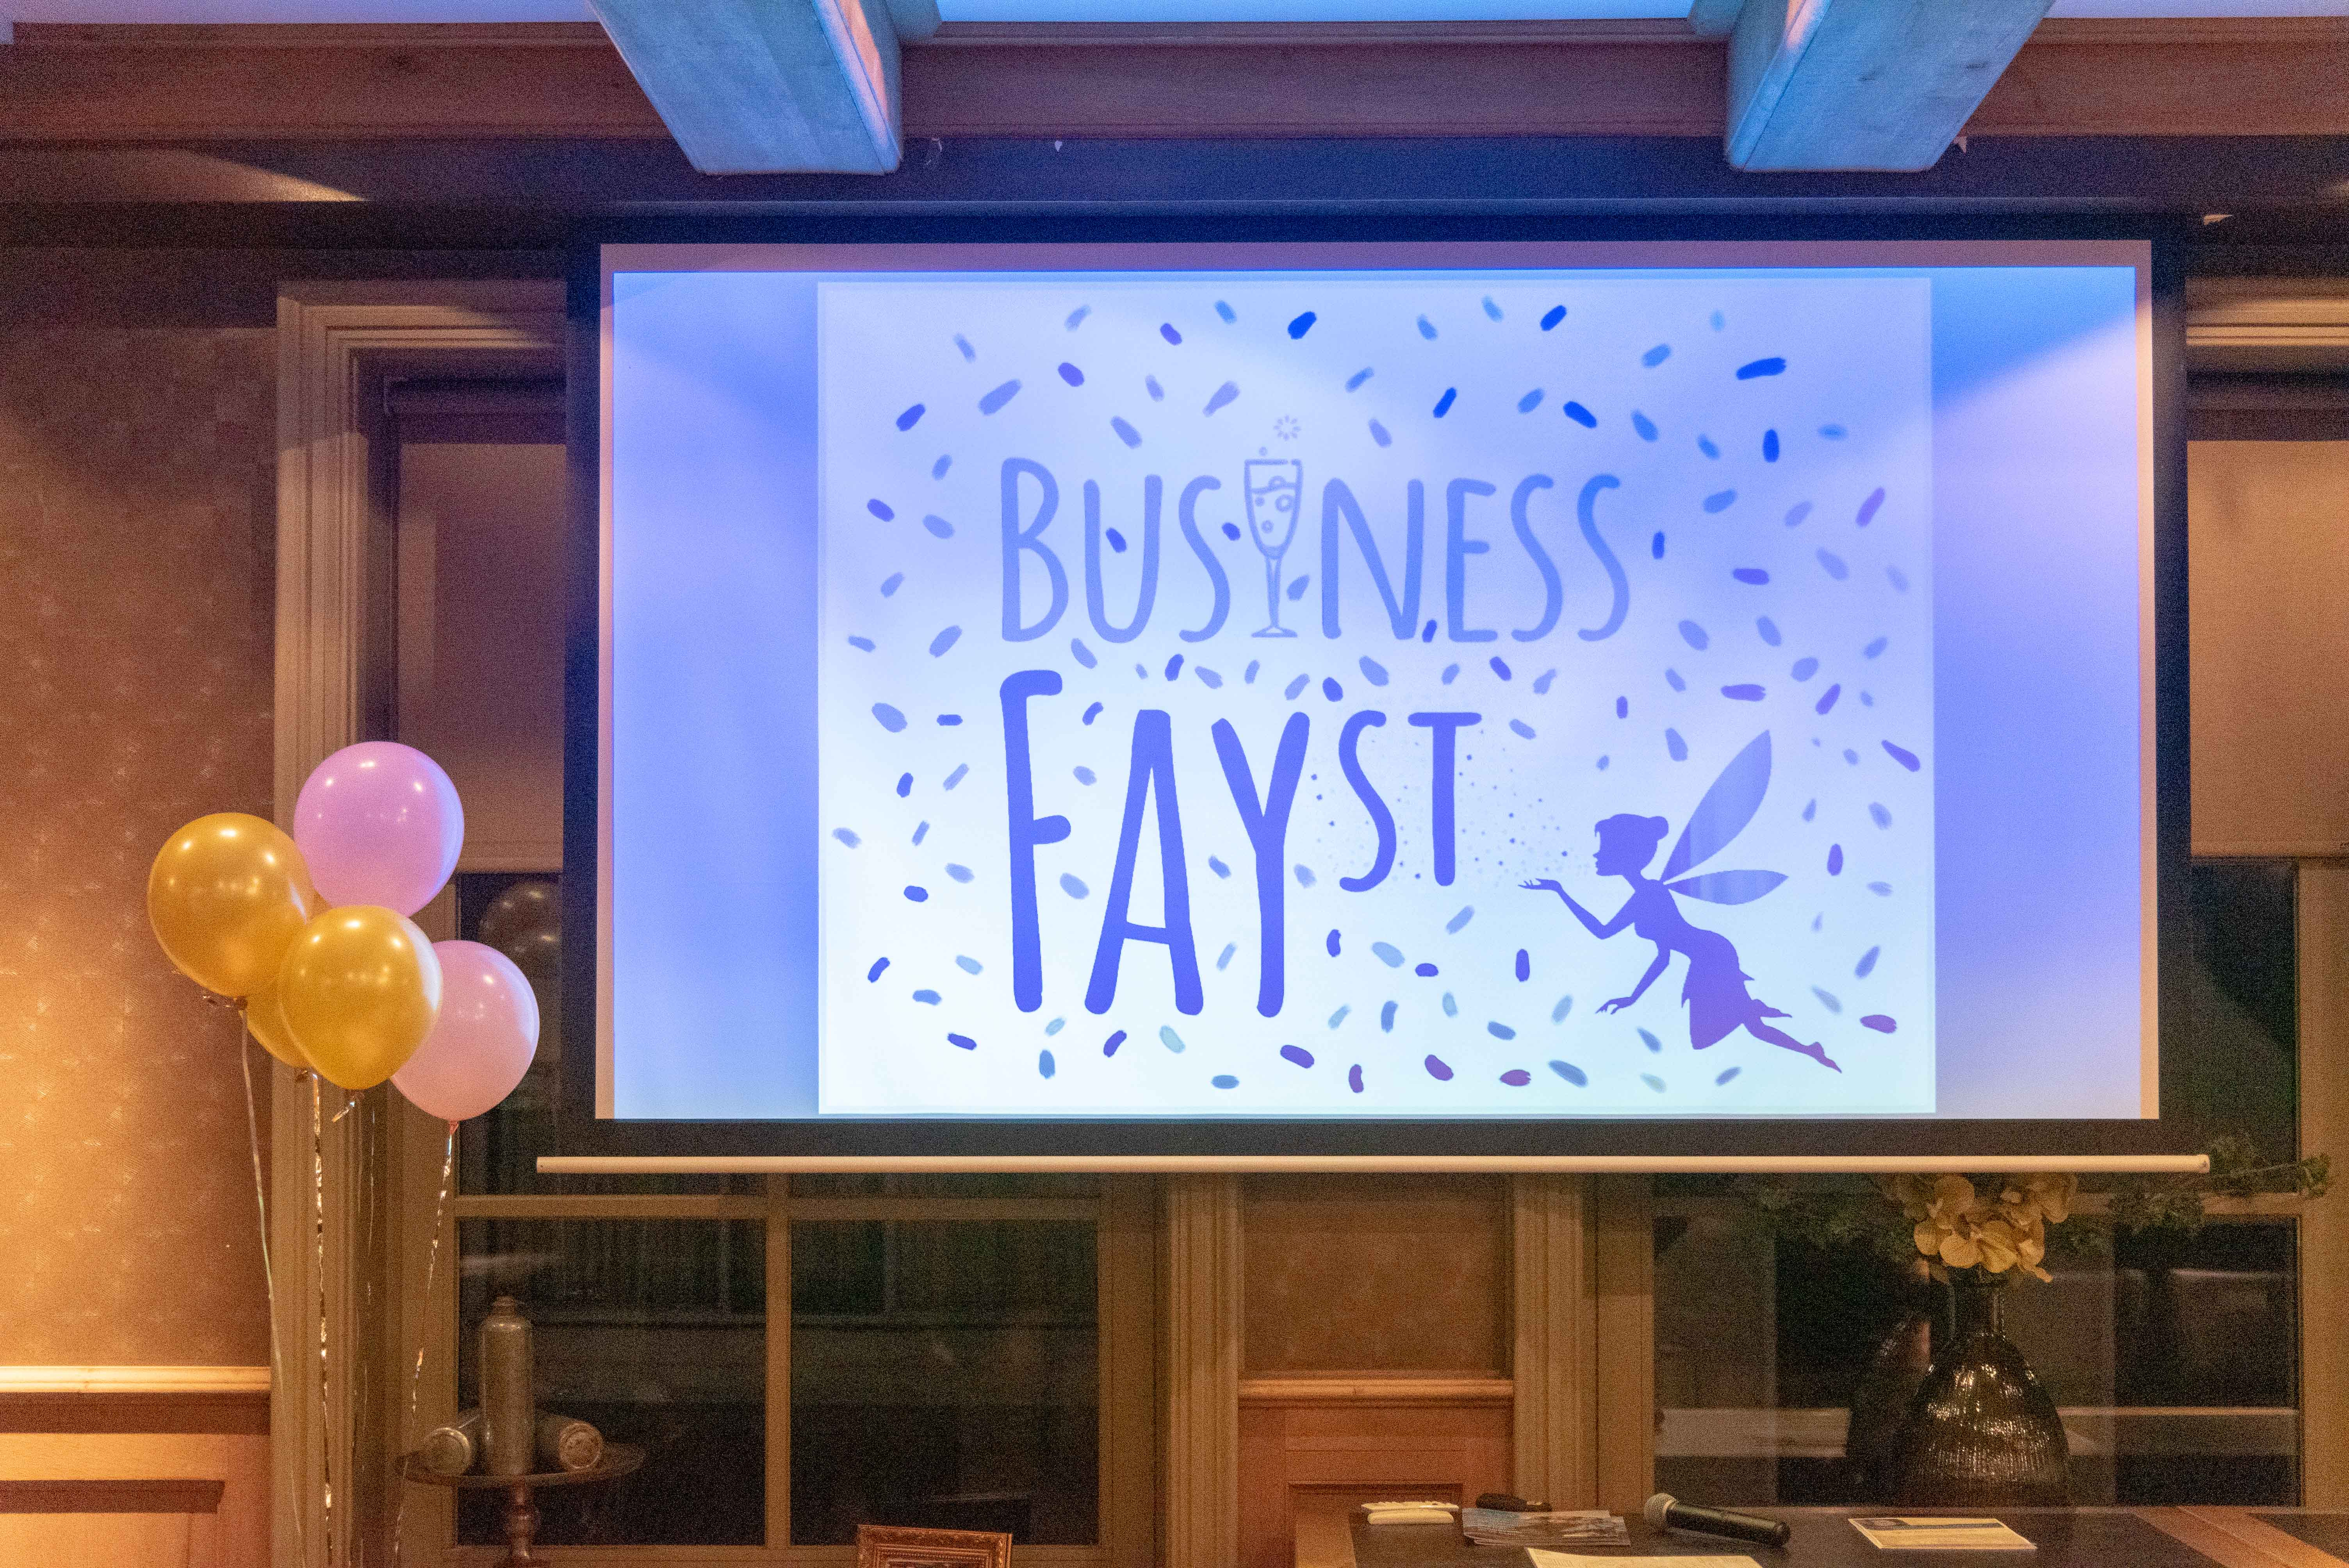 business-fayst-fimke-jongejan